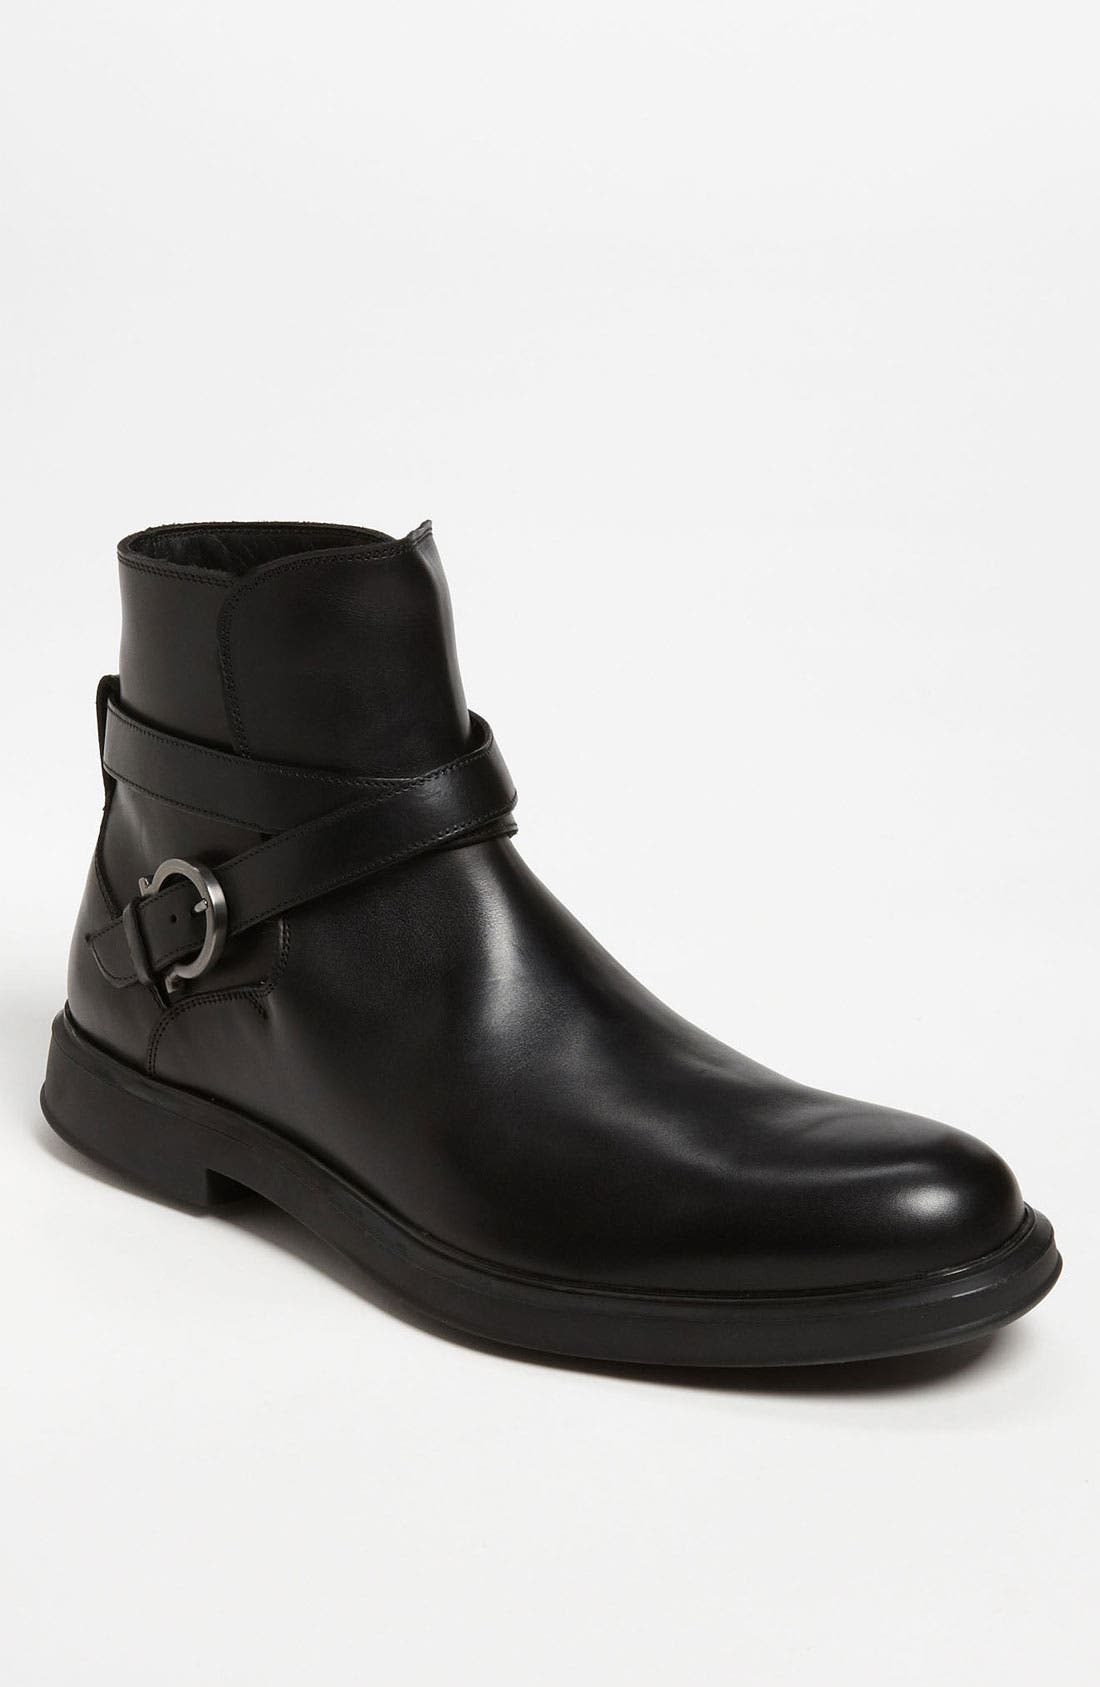 Alternate Image 1 Selected - Salvatore Ferragamo 'Calder' Boot (Online Only)